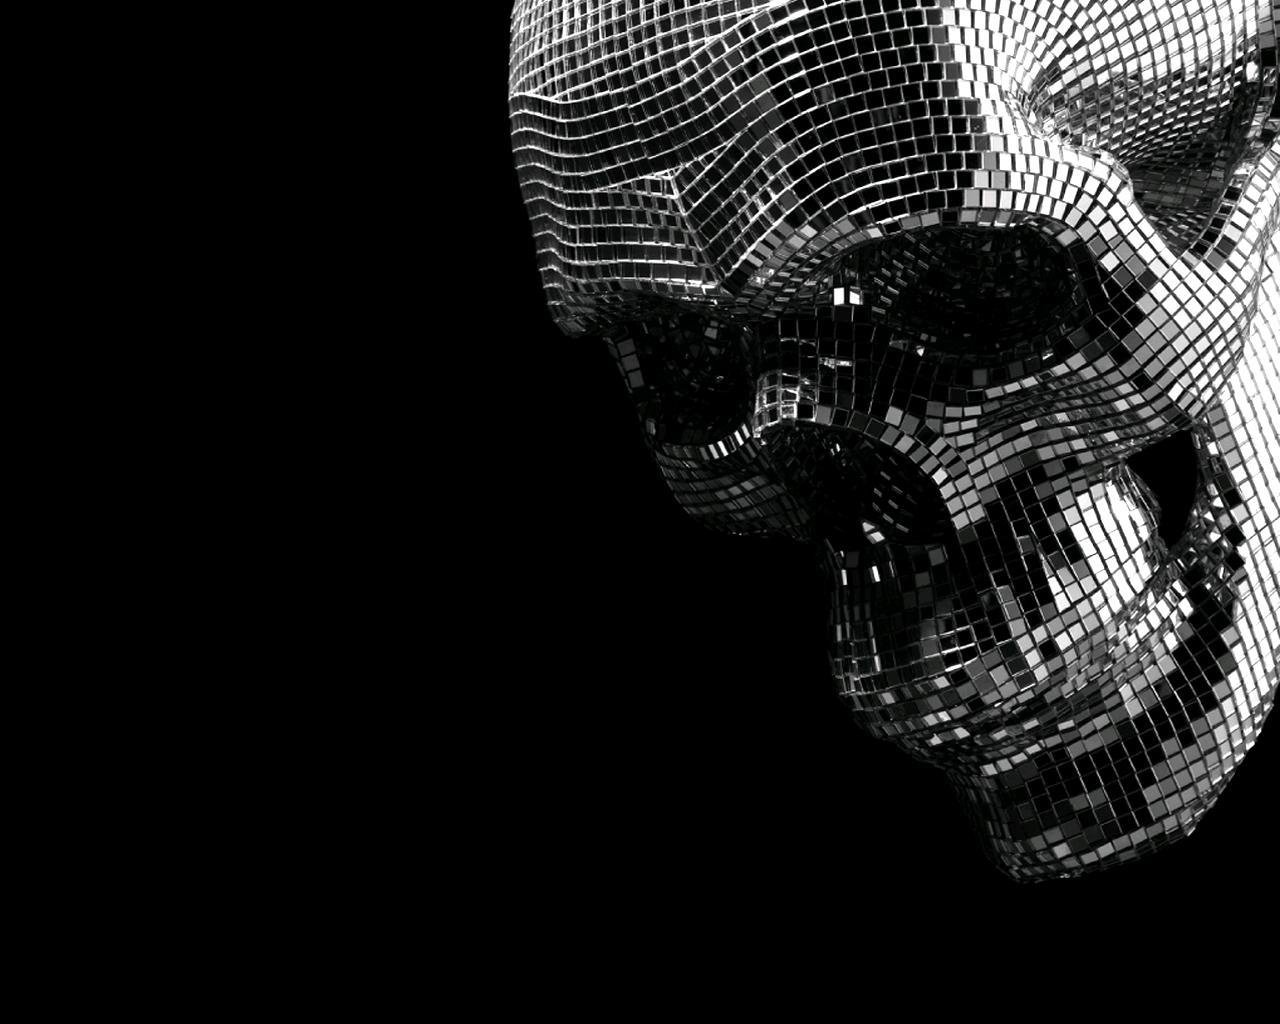 Disco Skull wallpaper 239556 1280x1024